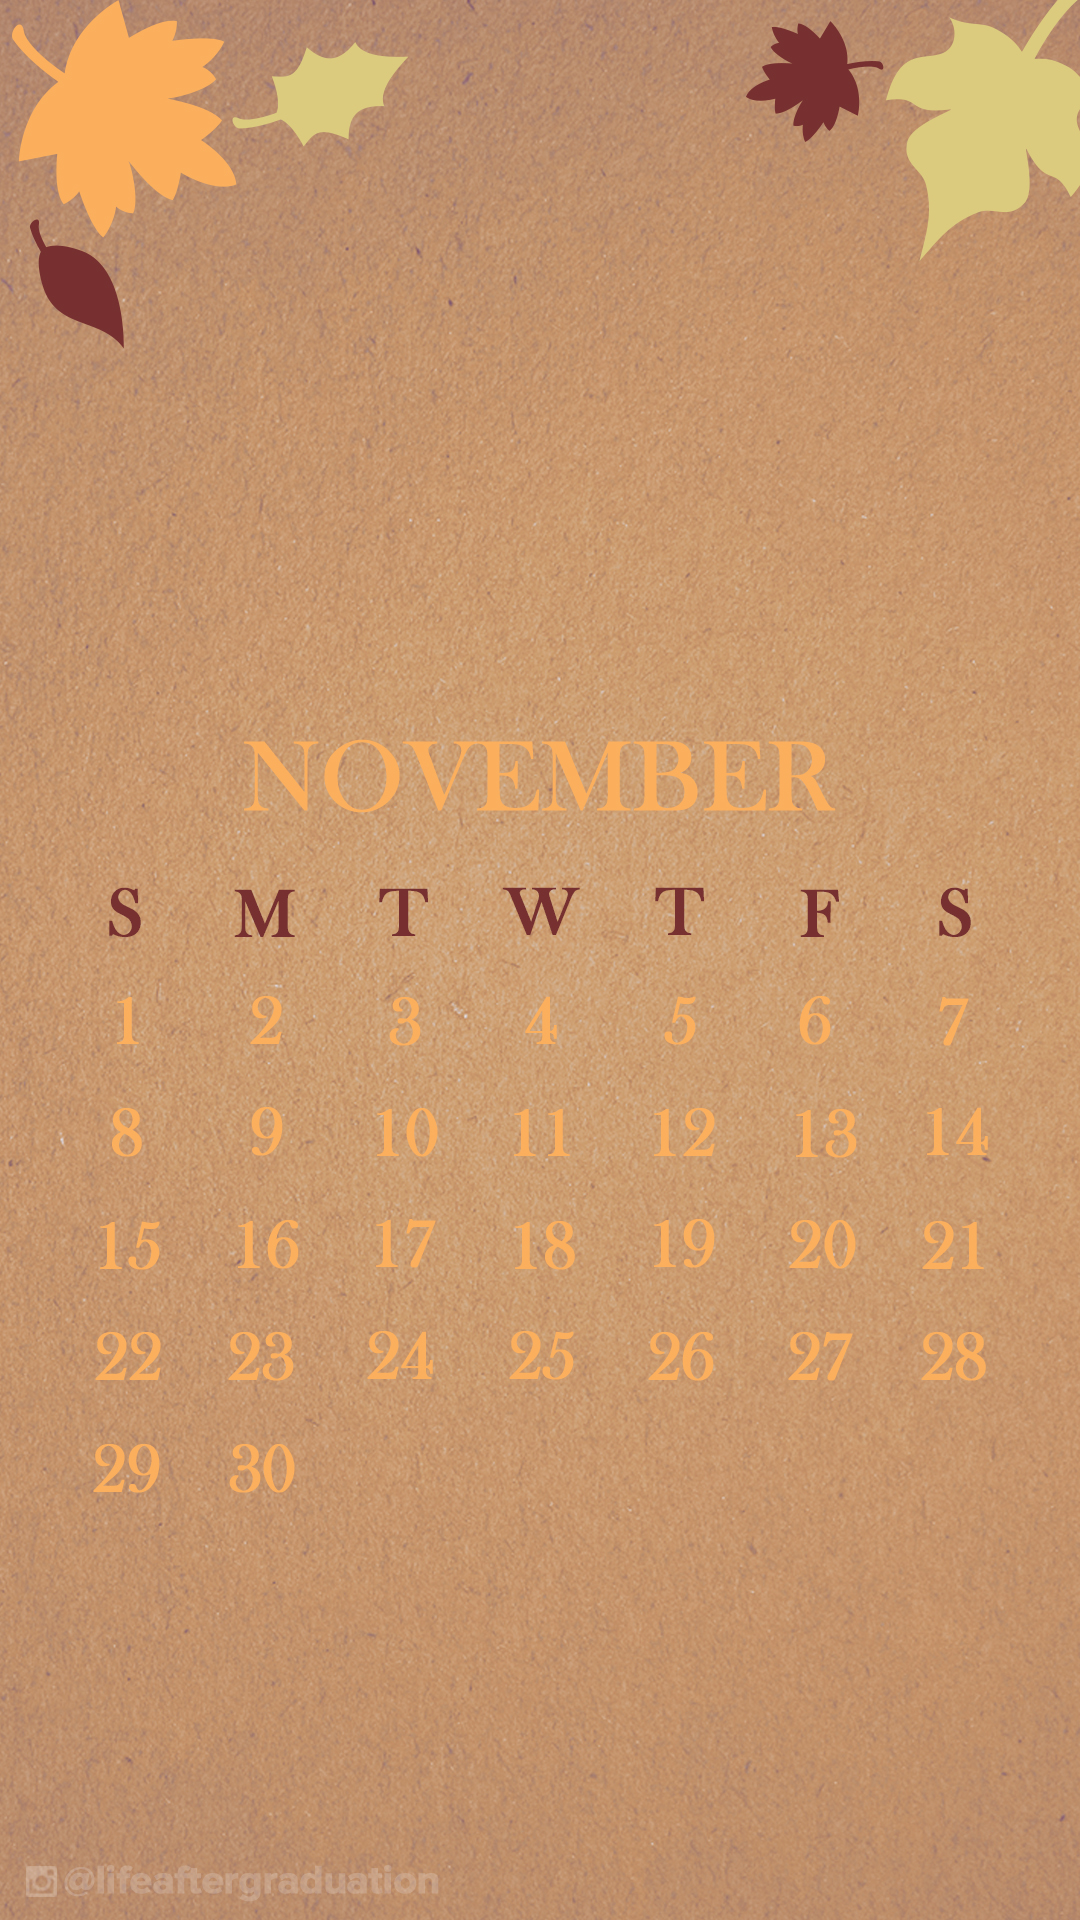 November Calendar Wallpaper For Iphone : November iphone wallpaper the dress decoded